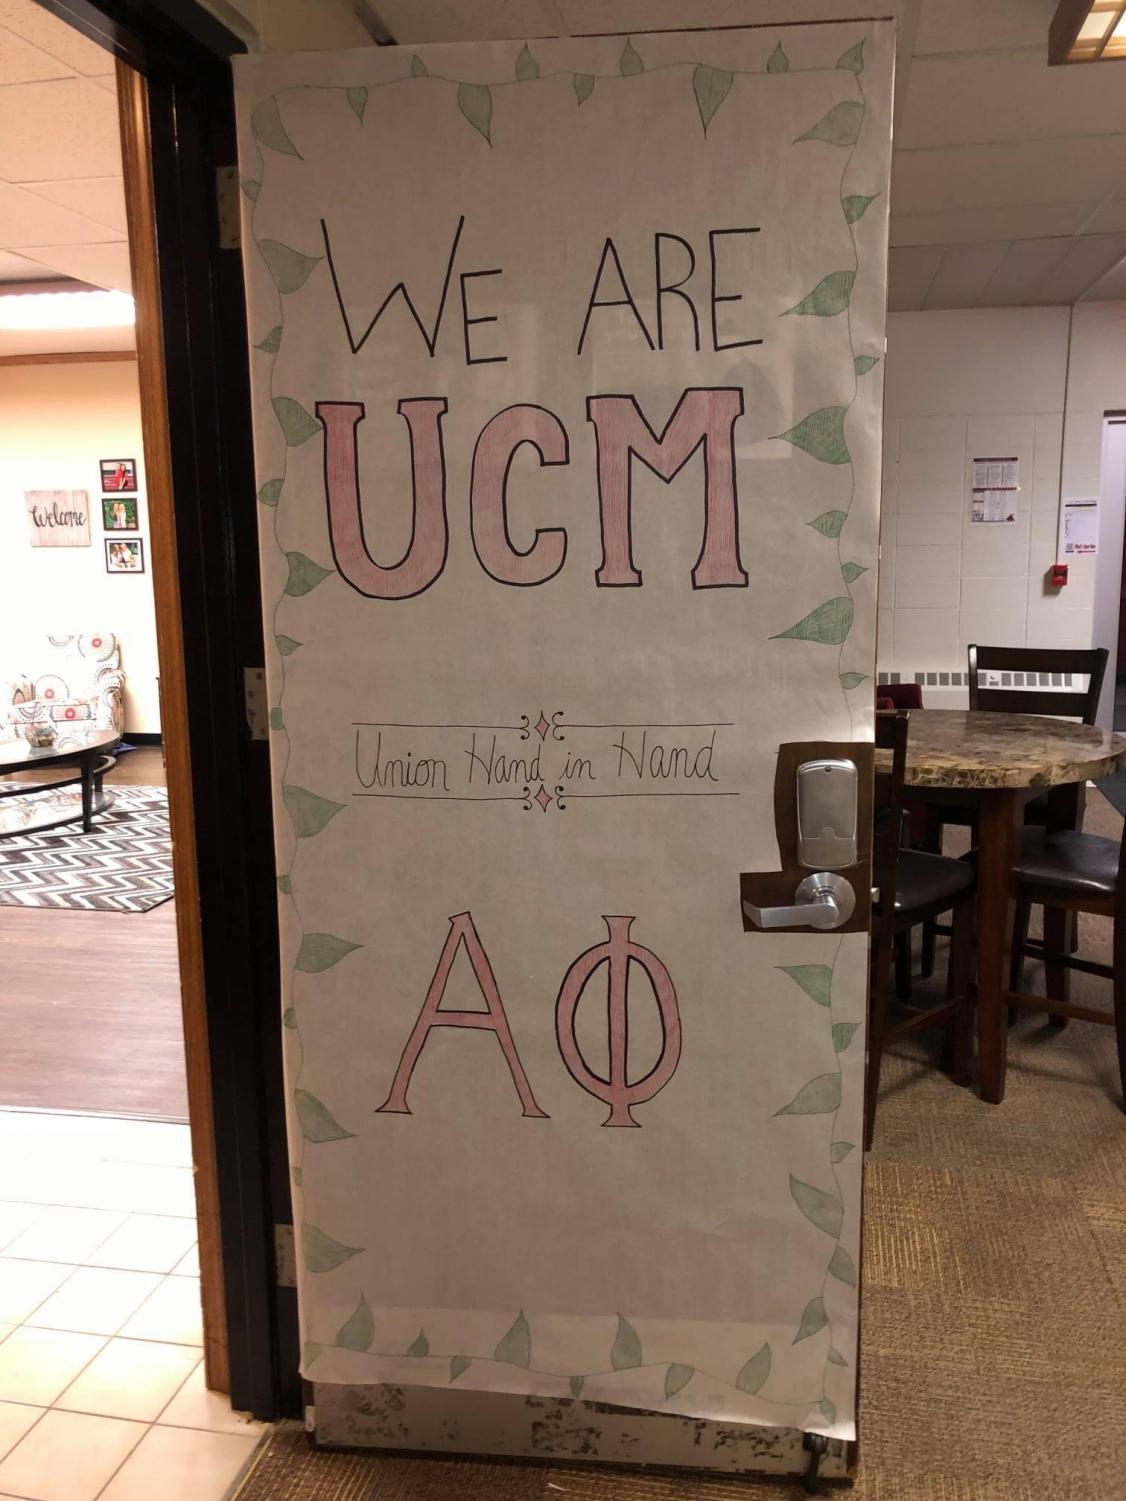 Warrensburg+and+UCM+Celebrate+School+Spirit+through+Door+Decorations